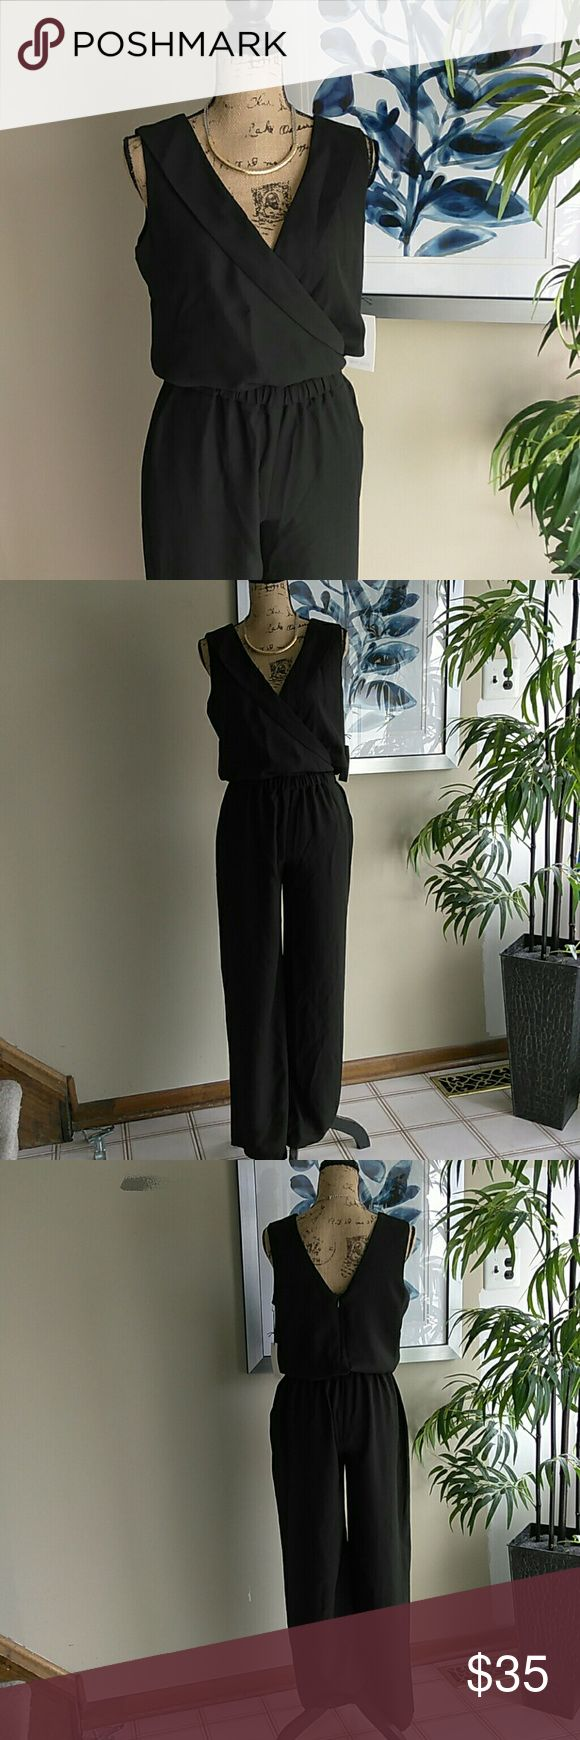 'Sabrina' Sexy Black JumpSuit Size Large P NWT Sexy & sophisticated. NWT Oliver Grace 'Sabrina' Simple Black Jumpsuit / Romper. Size Petite Large. Bought at Nordstrom. Pants with attached top. Small hidden zipper at back. Elastic waist. Black V-neck jump suit. Sleeveless romper. BRAND NEW WITH TAGS, NEVER WORN! In fabulous condition! Tried on one time. Feel free to ask questions. MAKE ME AN OFFER! FREE GIFT with every purchase! Bundle for further discounts. Oliver Grace Pants Jumpsuits…